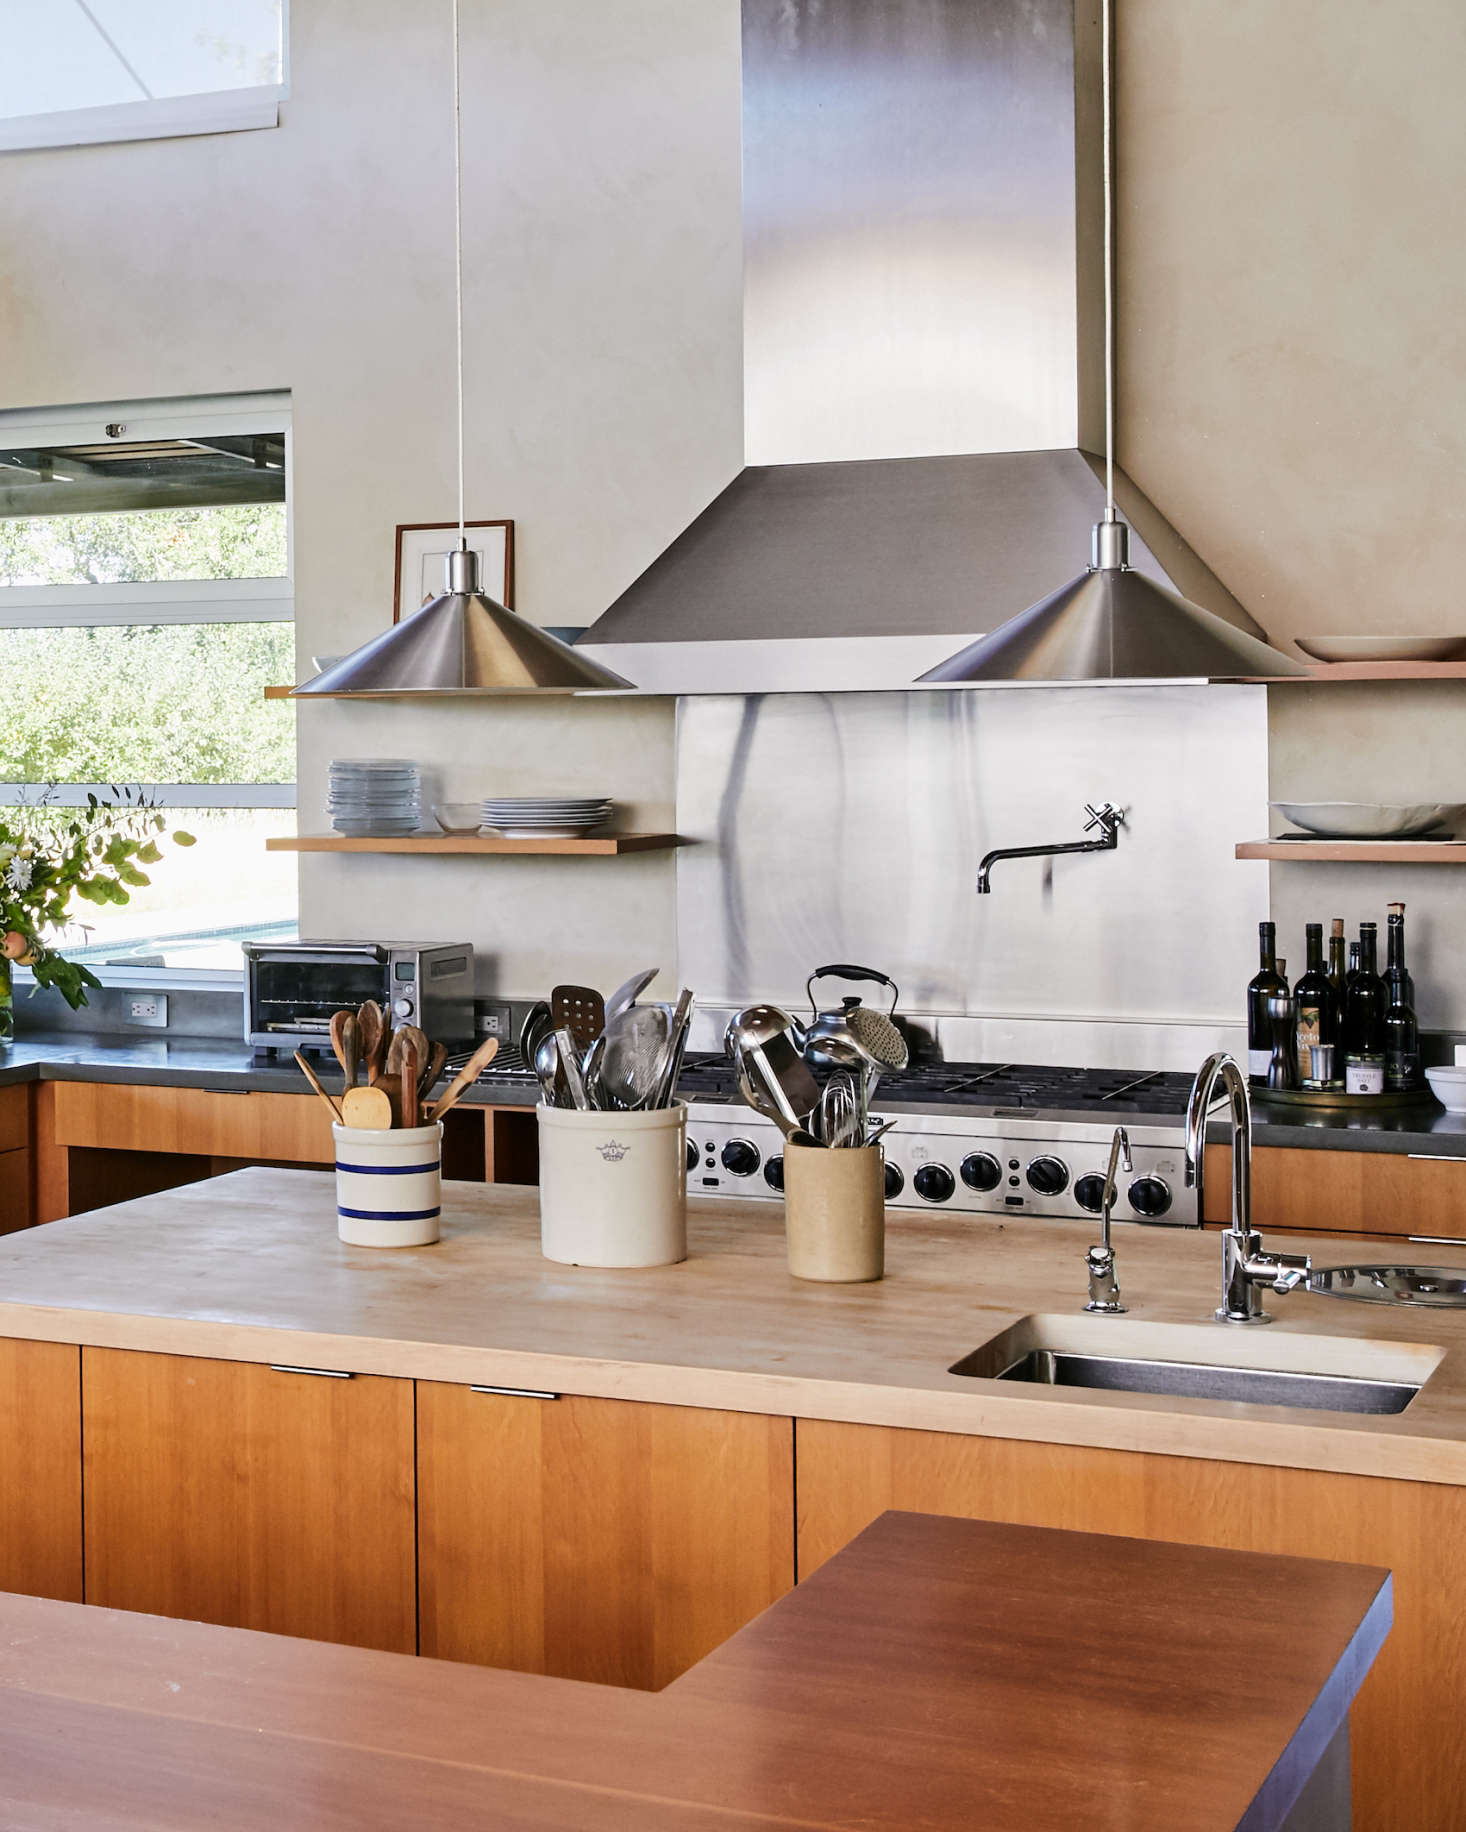 Cooking utensils are stored in stoneware crocks on the island. The custom wood cabinetry is made of vertical-grain Douglas fir, and the kitchen faucets are Dornbracht.